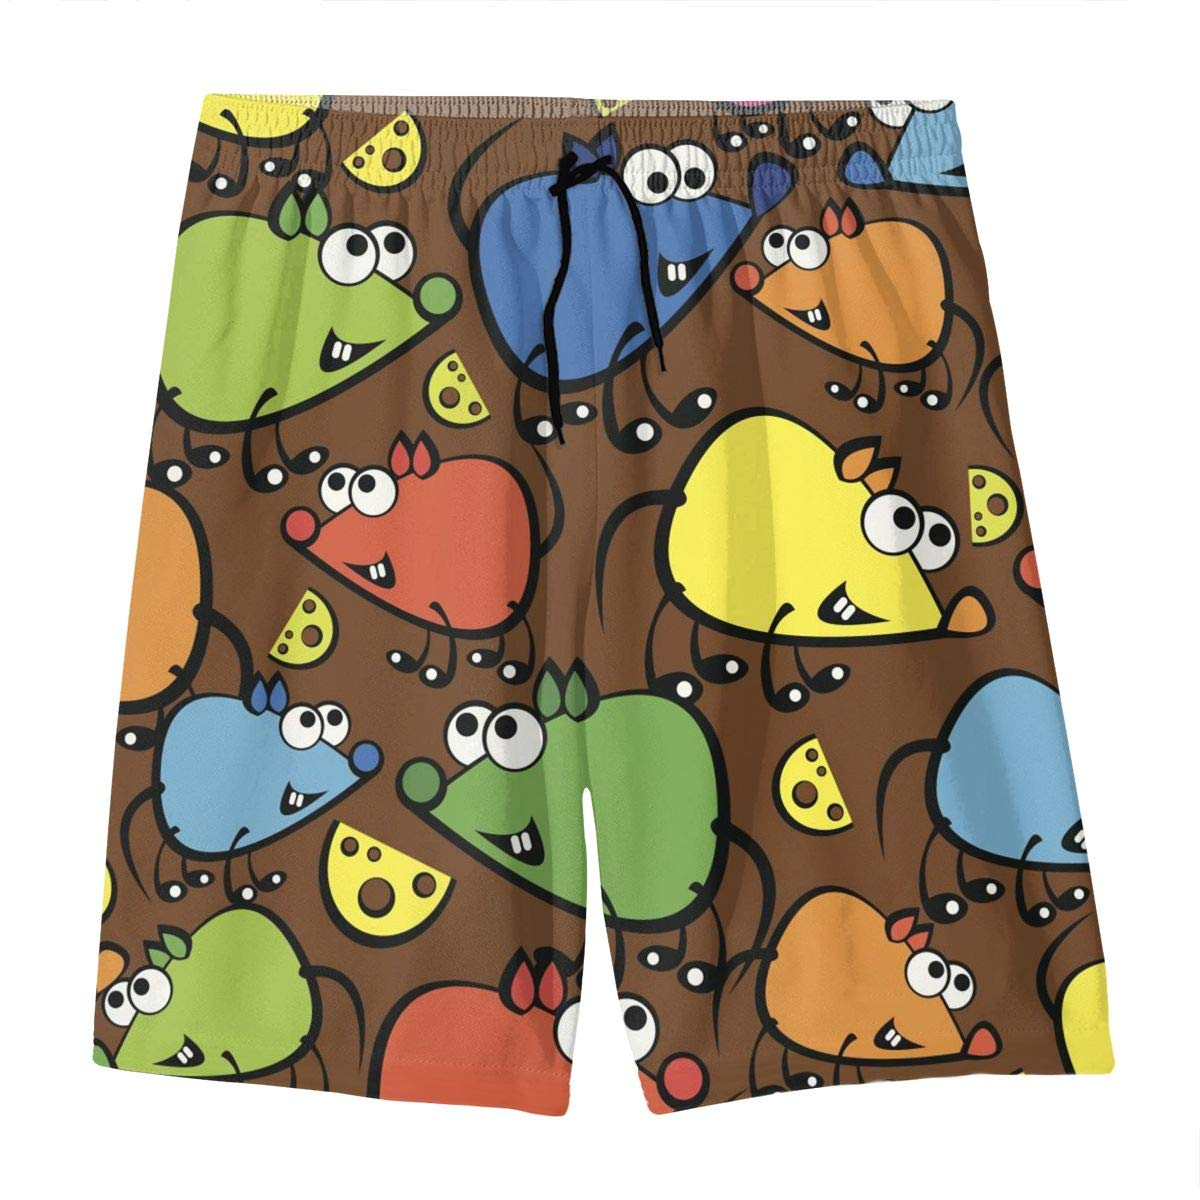 Mens Swim Trunks Cute Colorful Mouse Printed Beach Board Shorts with Pockets Cool Novelty Bathing Suits for Teen Boys